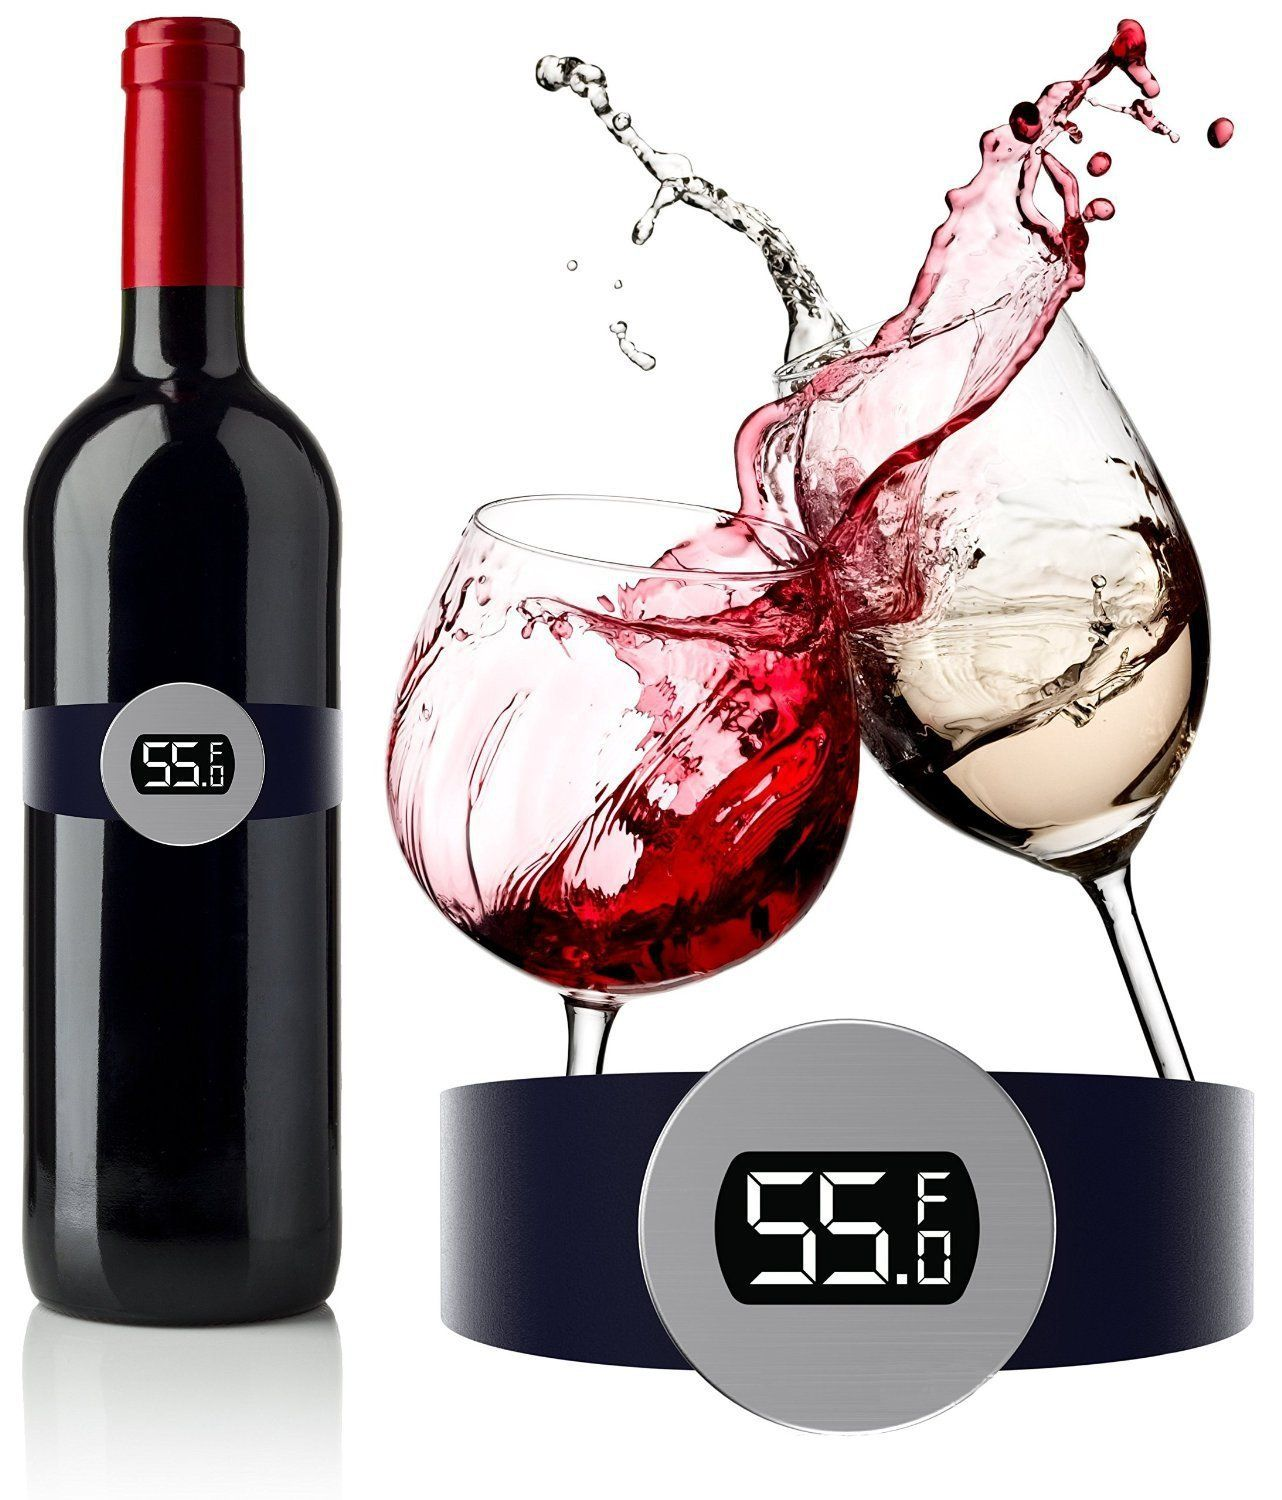 Cnb S Wine Thermometer Best Wine Gift Accessory For Any Wine Enthusiast To Serve Your Bottles At The Correct Wine Tempe Wine Enthusiast Wine Temperature Wine